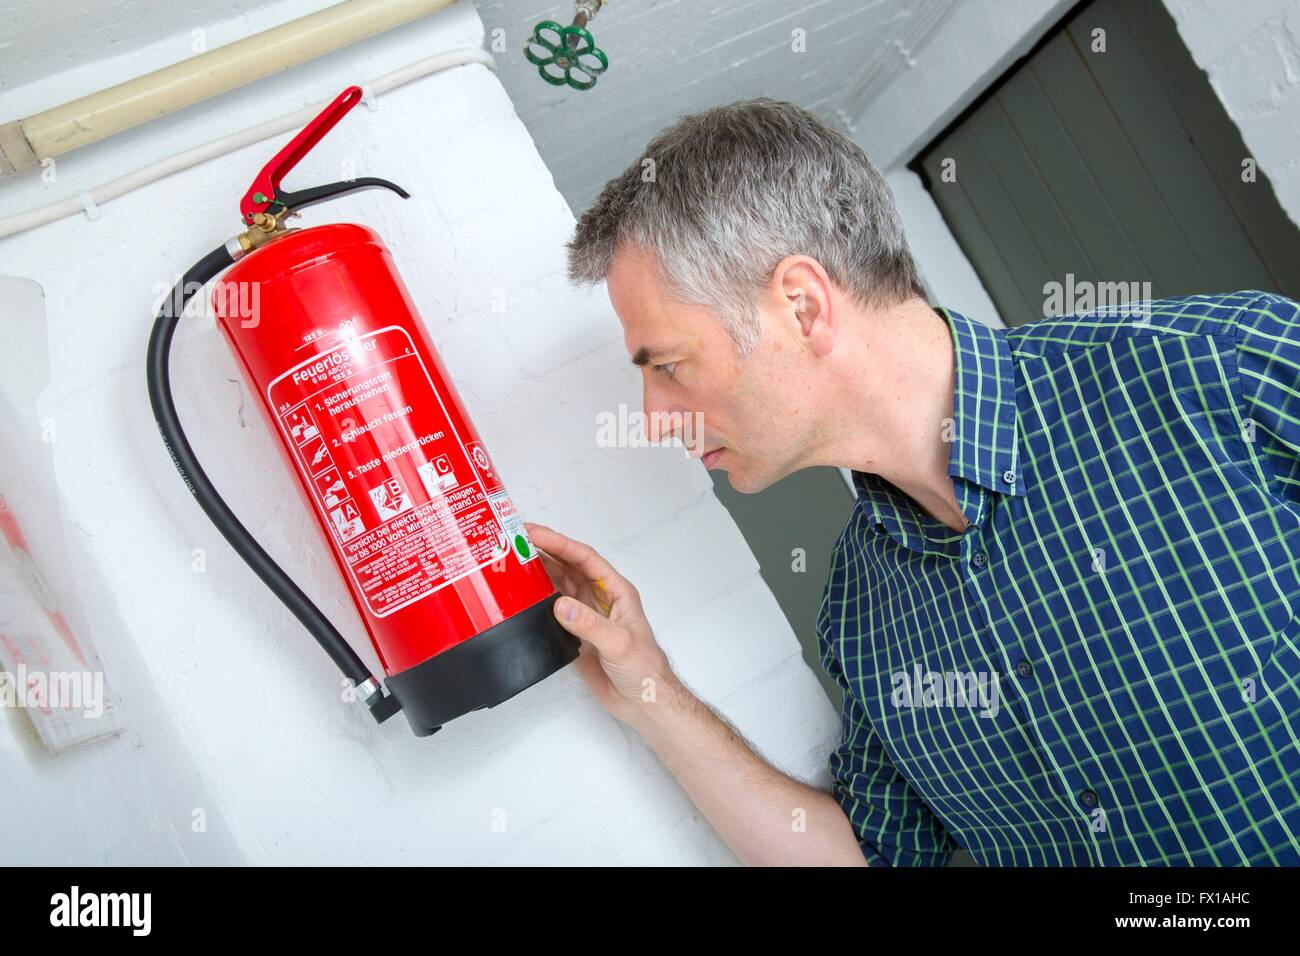 Man controls the fire extinguisher - Stock Image